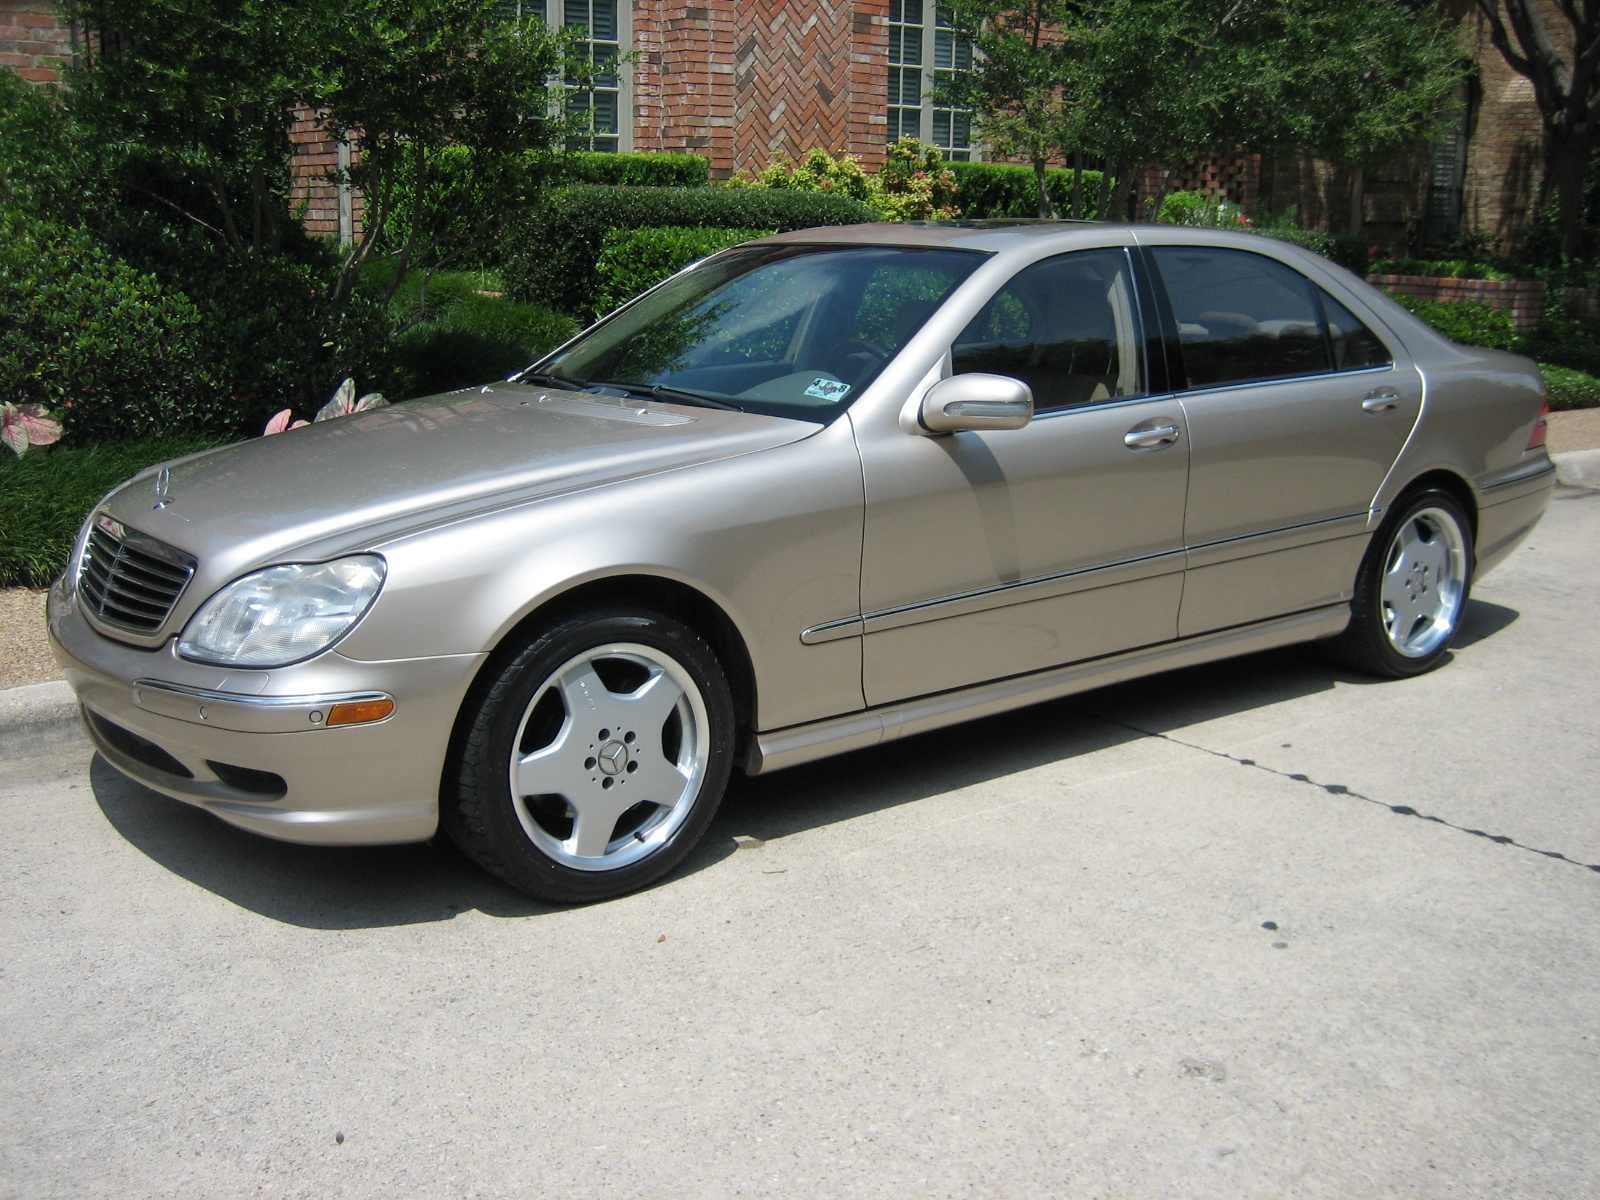 2005 mercedes benz s class overview cargurus for 2005 mercedes benz suv